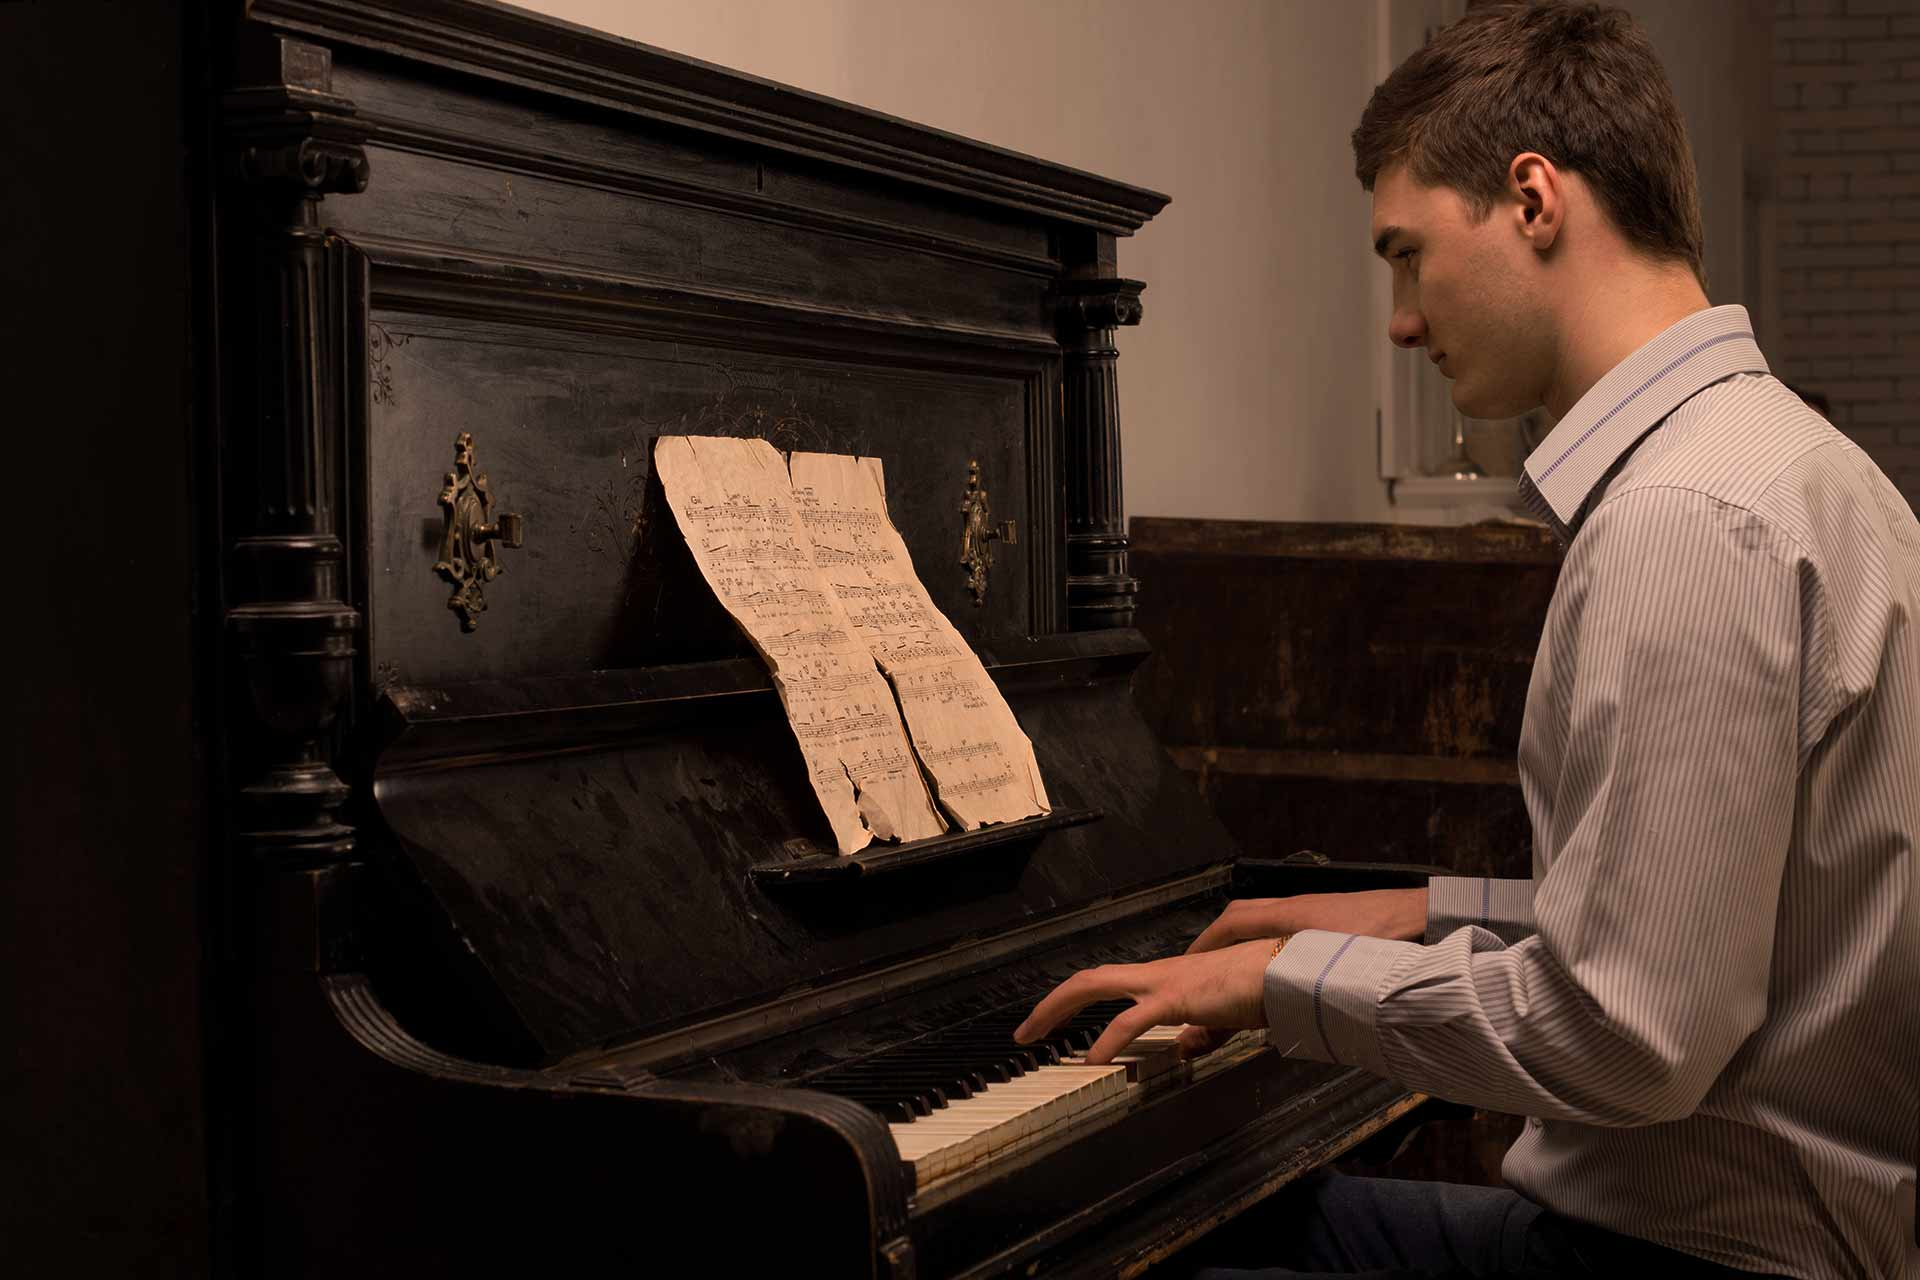 Gentleman reading a piano score